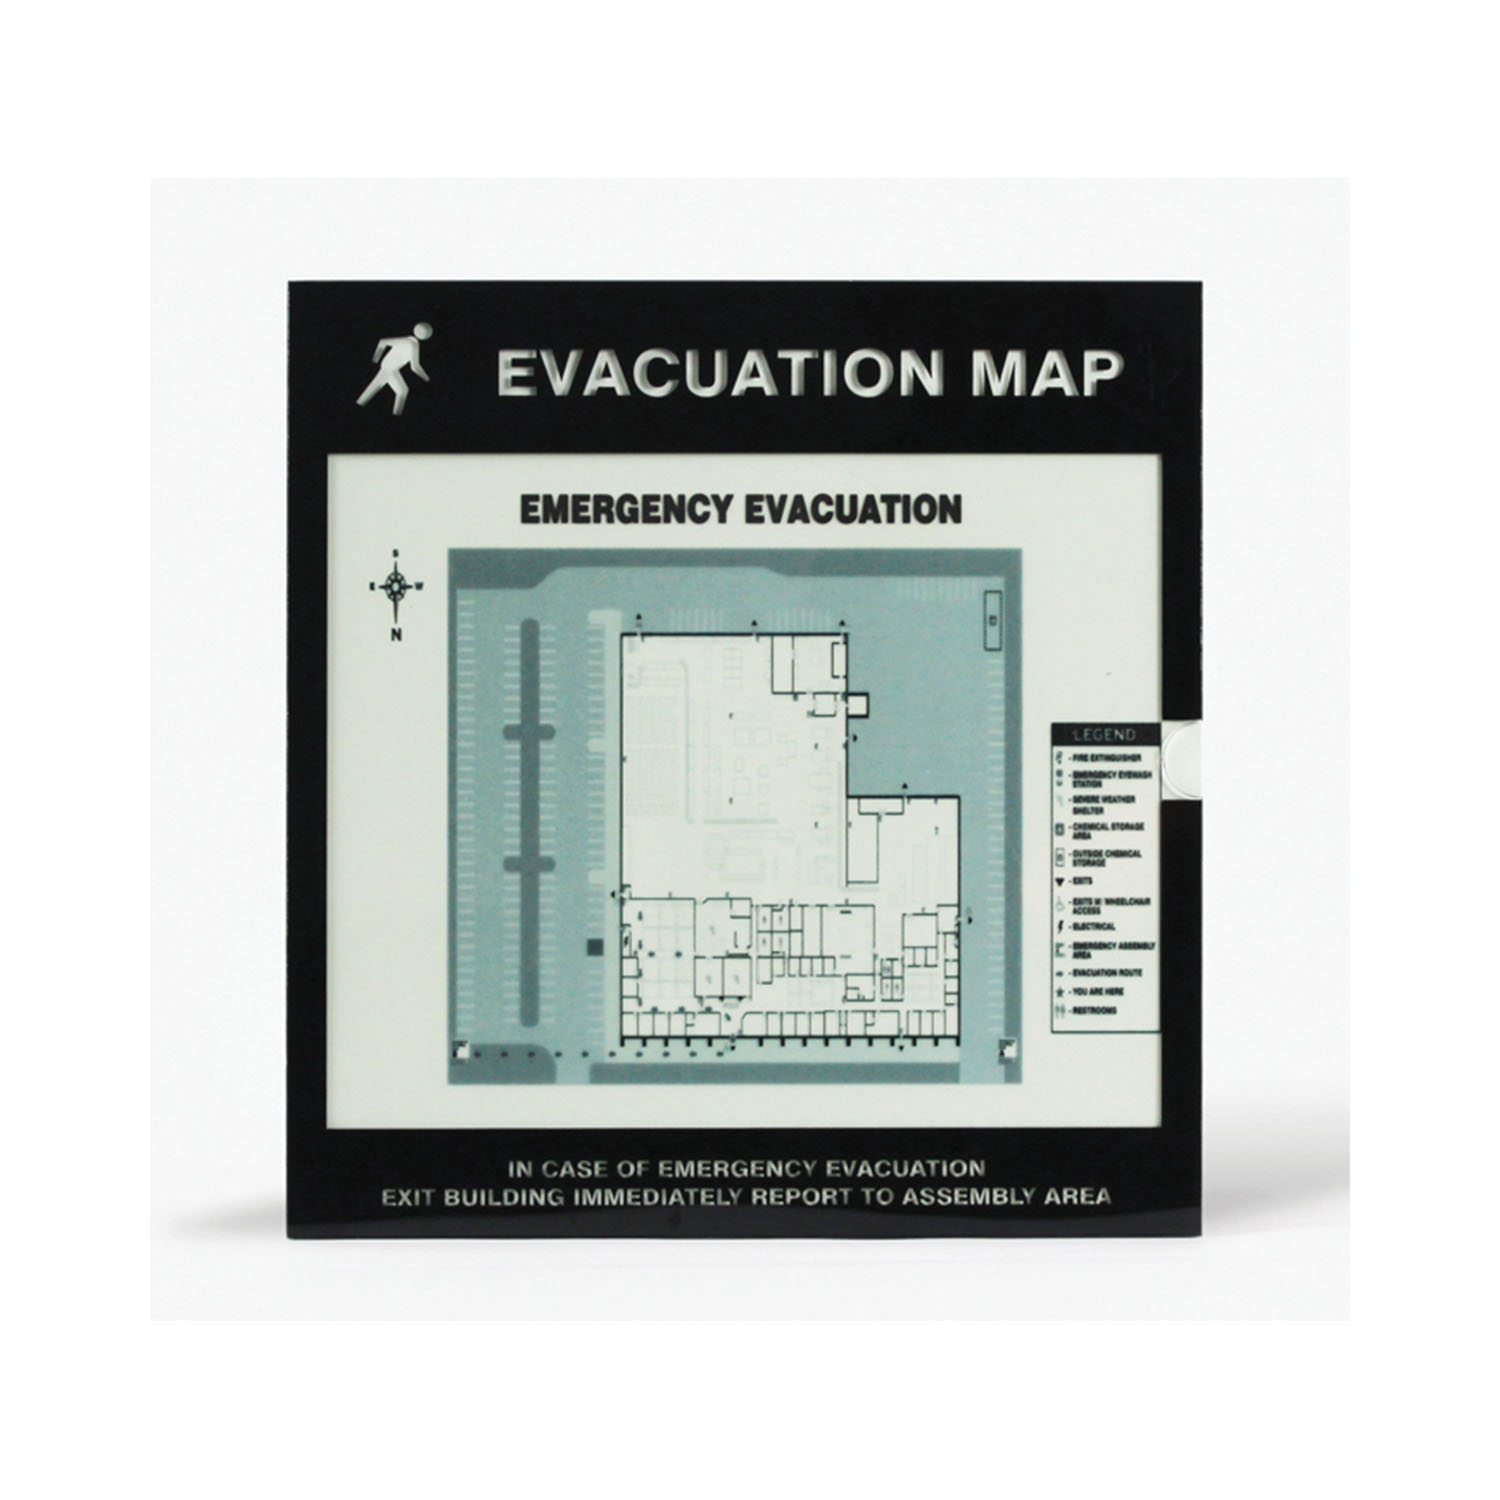 Accuform® DTA213 Evacuation Map Holder Insert, For Use With Inkjet and Laser Printer